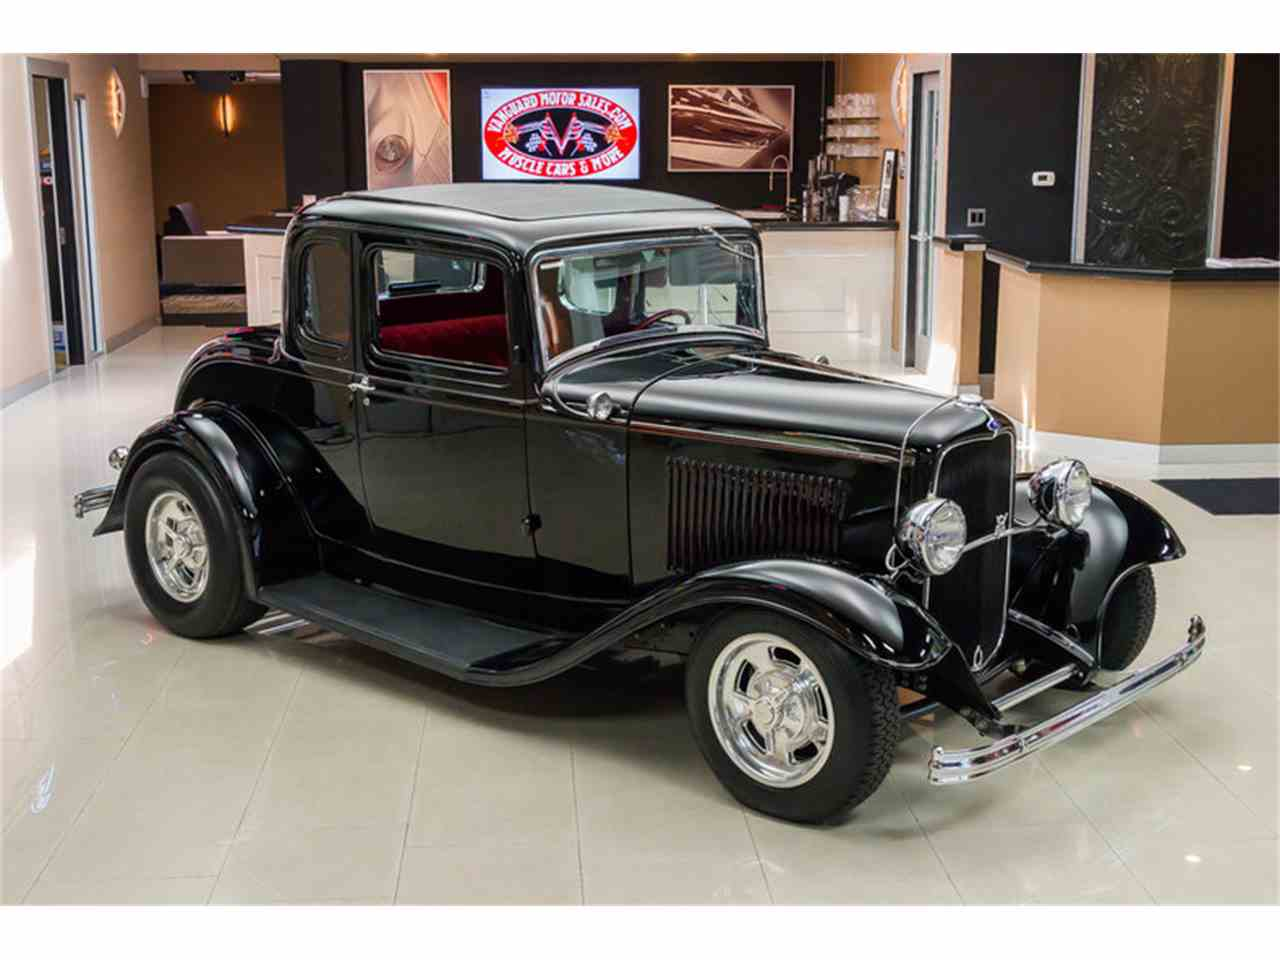 1932 ford 5 window coupe street rod for sale classiccars for 1932 ford 5 window coupe